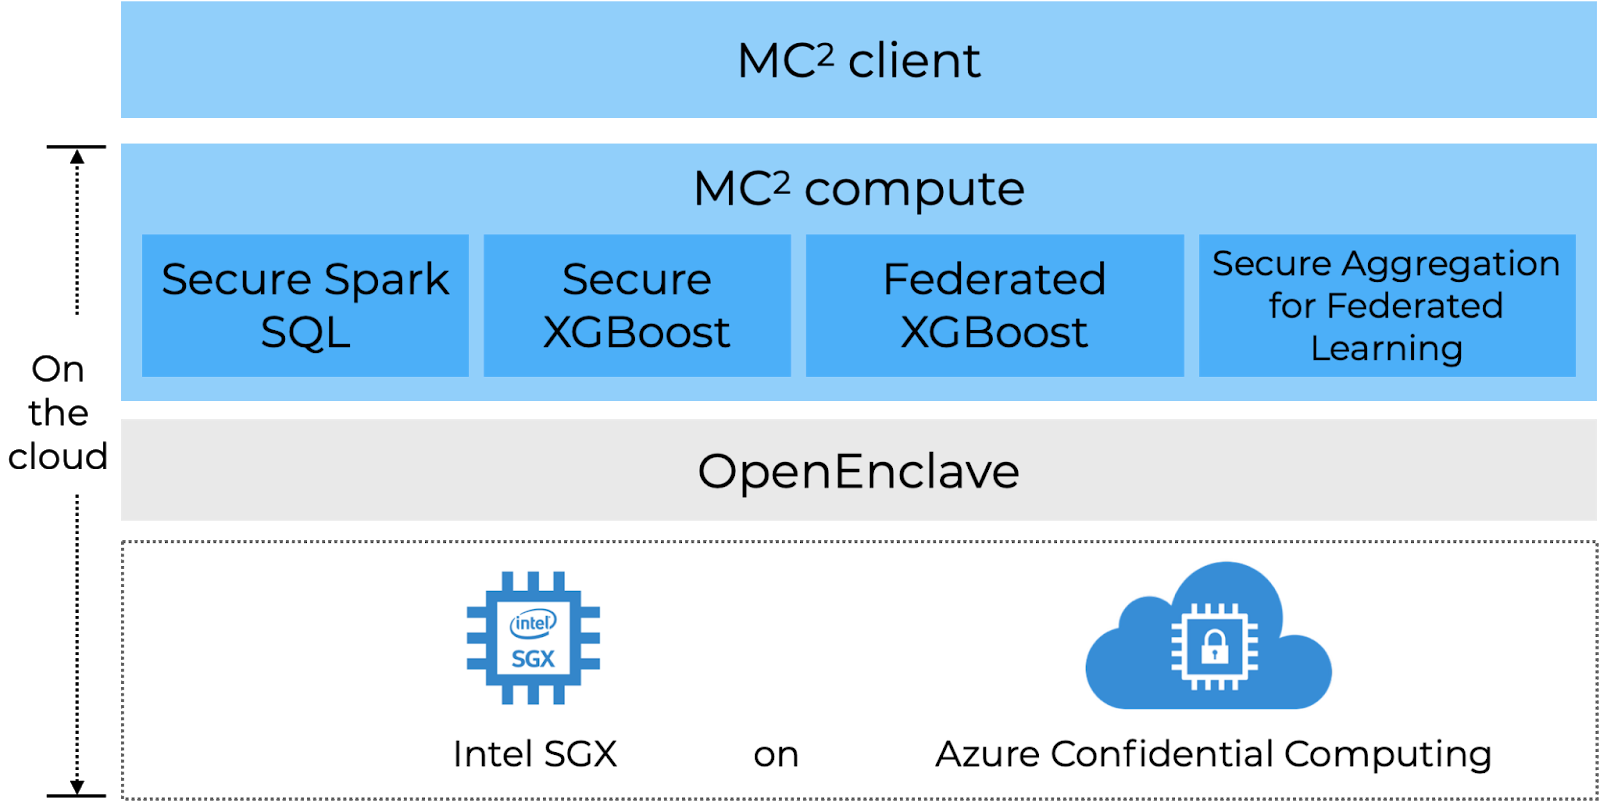 /secure-enclaves-and-ml-using-mc-e0363701 feature image